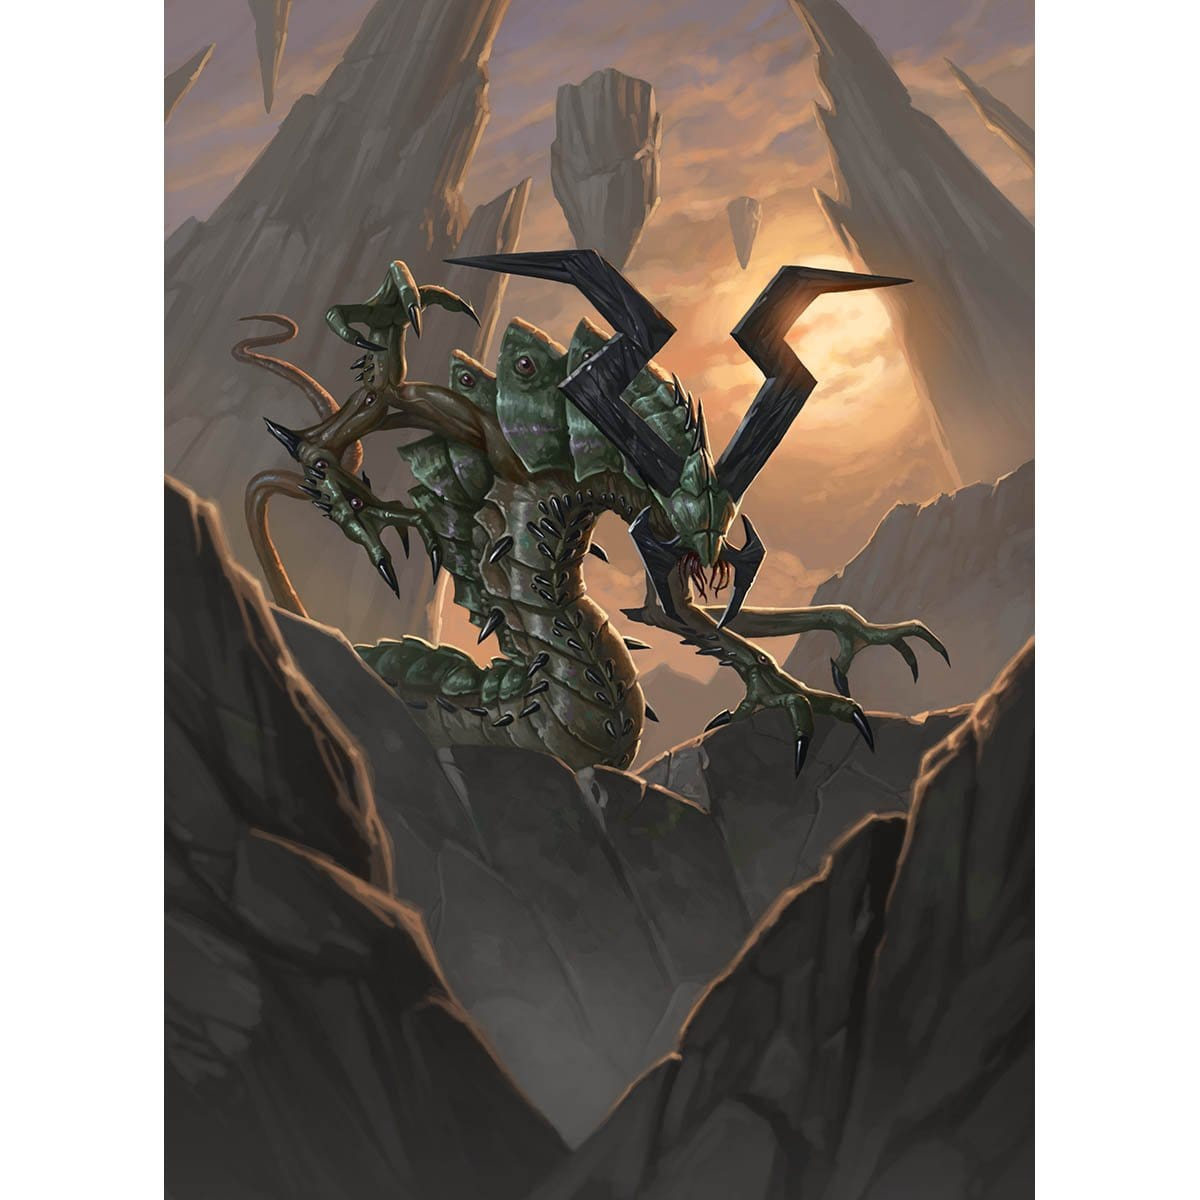 Eldrazi Scion Token Print - Print - Original Magic Art - Accessories for Magic the Gathering and other card games